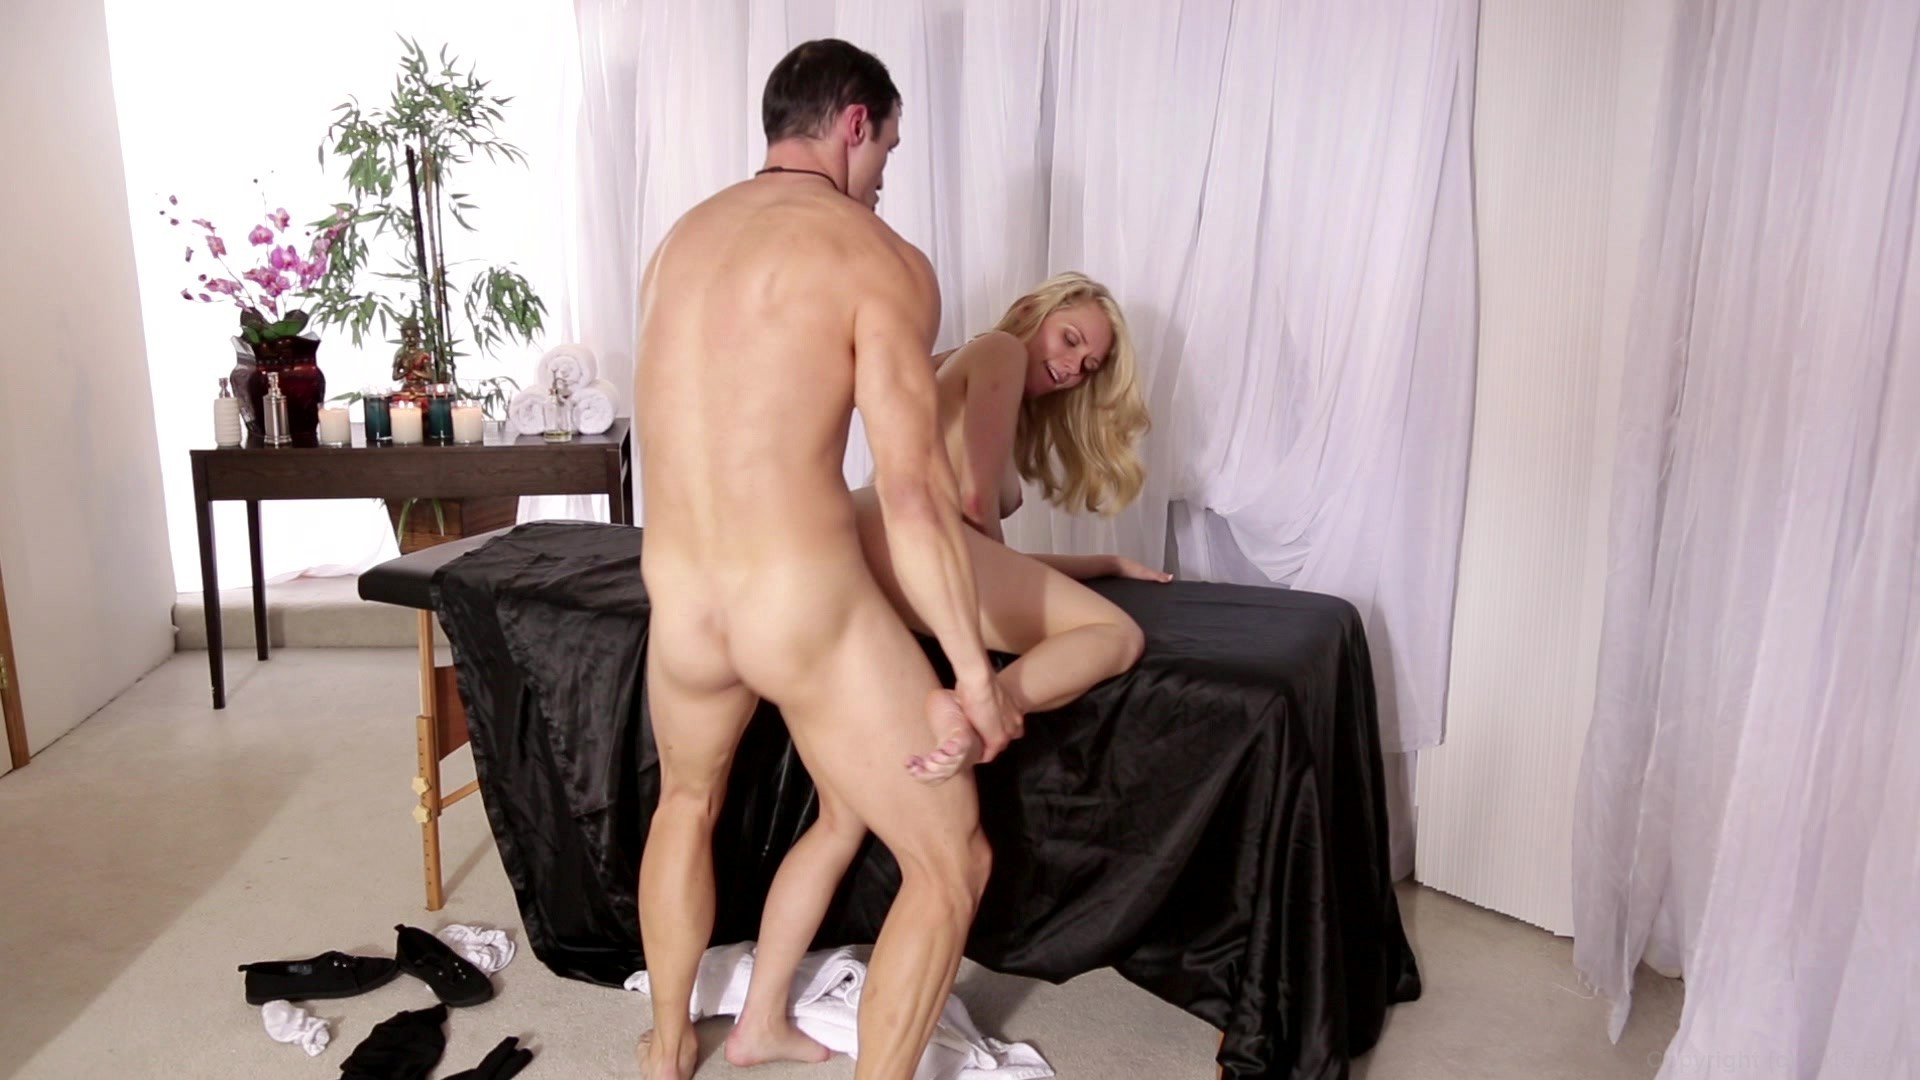 Free full length hq porn full length porn in ultra hd